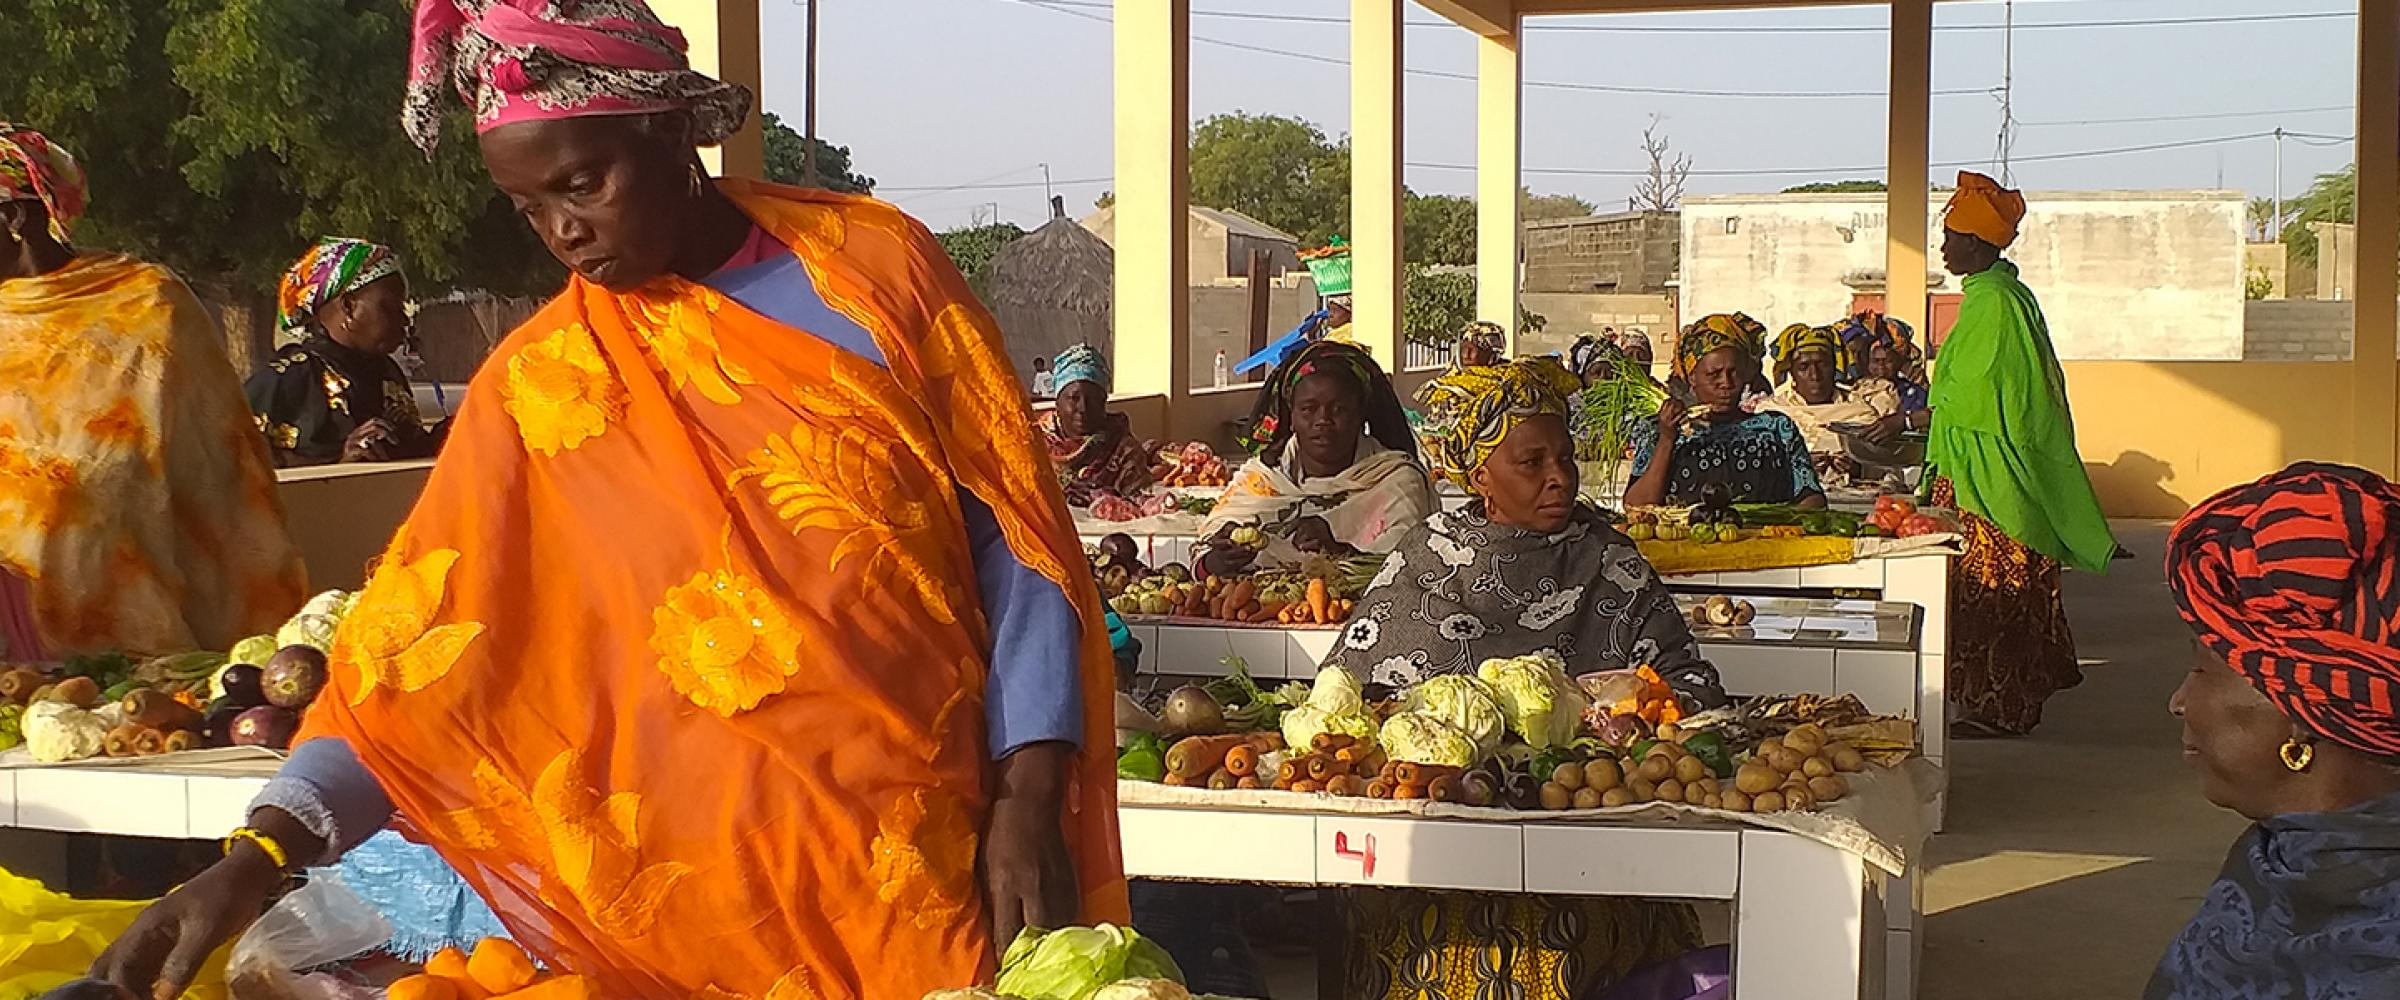 A woman in the Taiba N'diaye Commune sells her fresh produce at a new marketplace provided by the Lekela project.